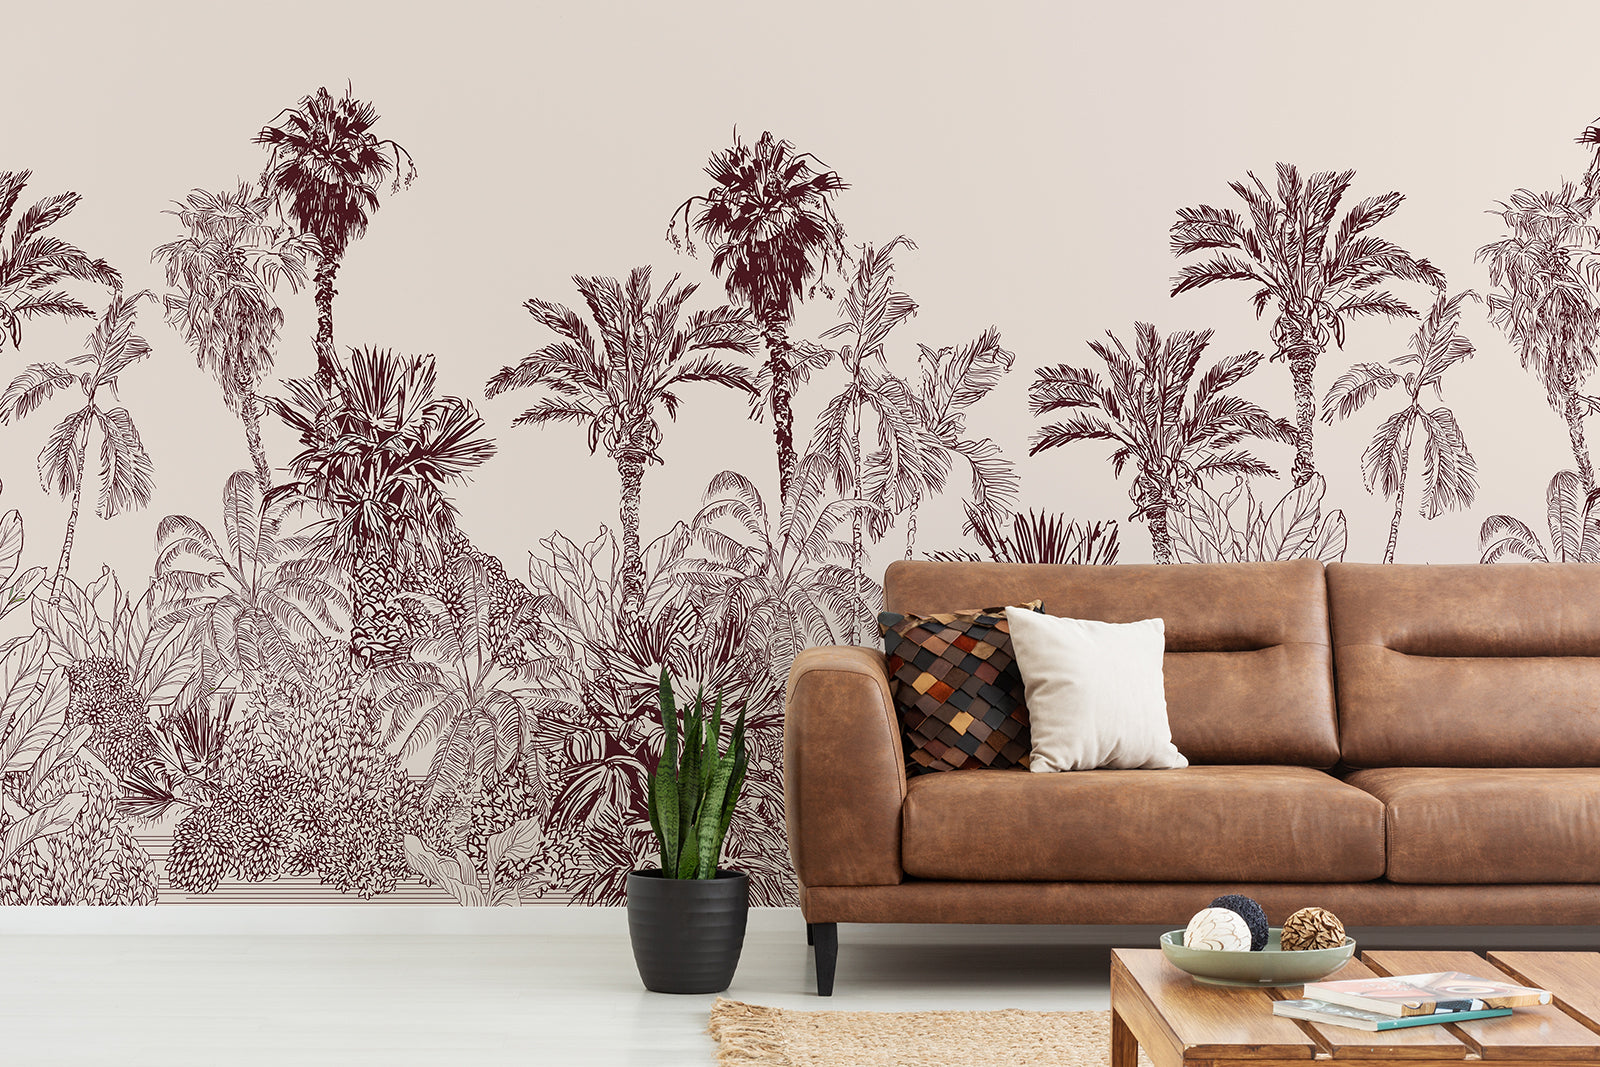 Treescape wallpaper peel and stick tropical